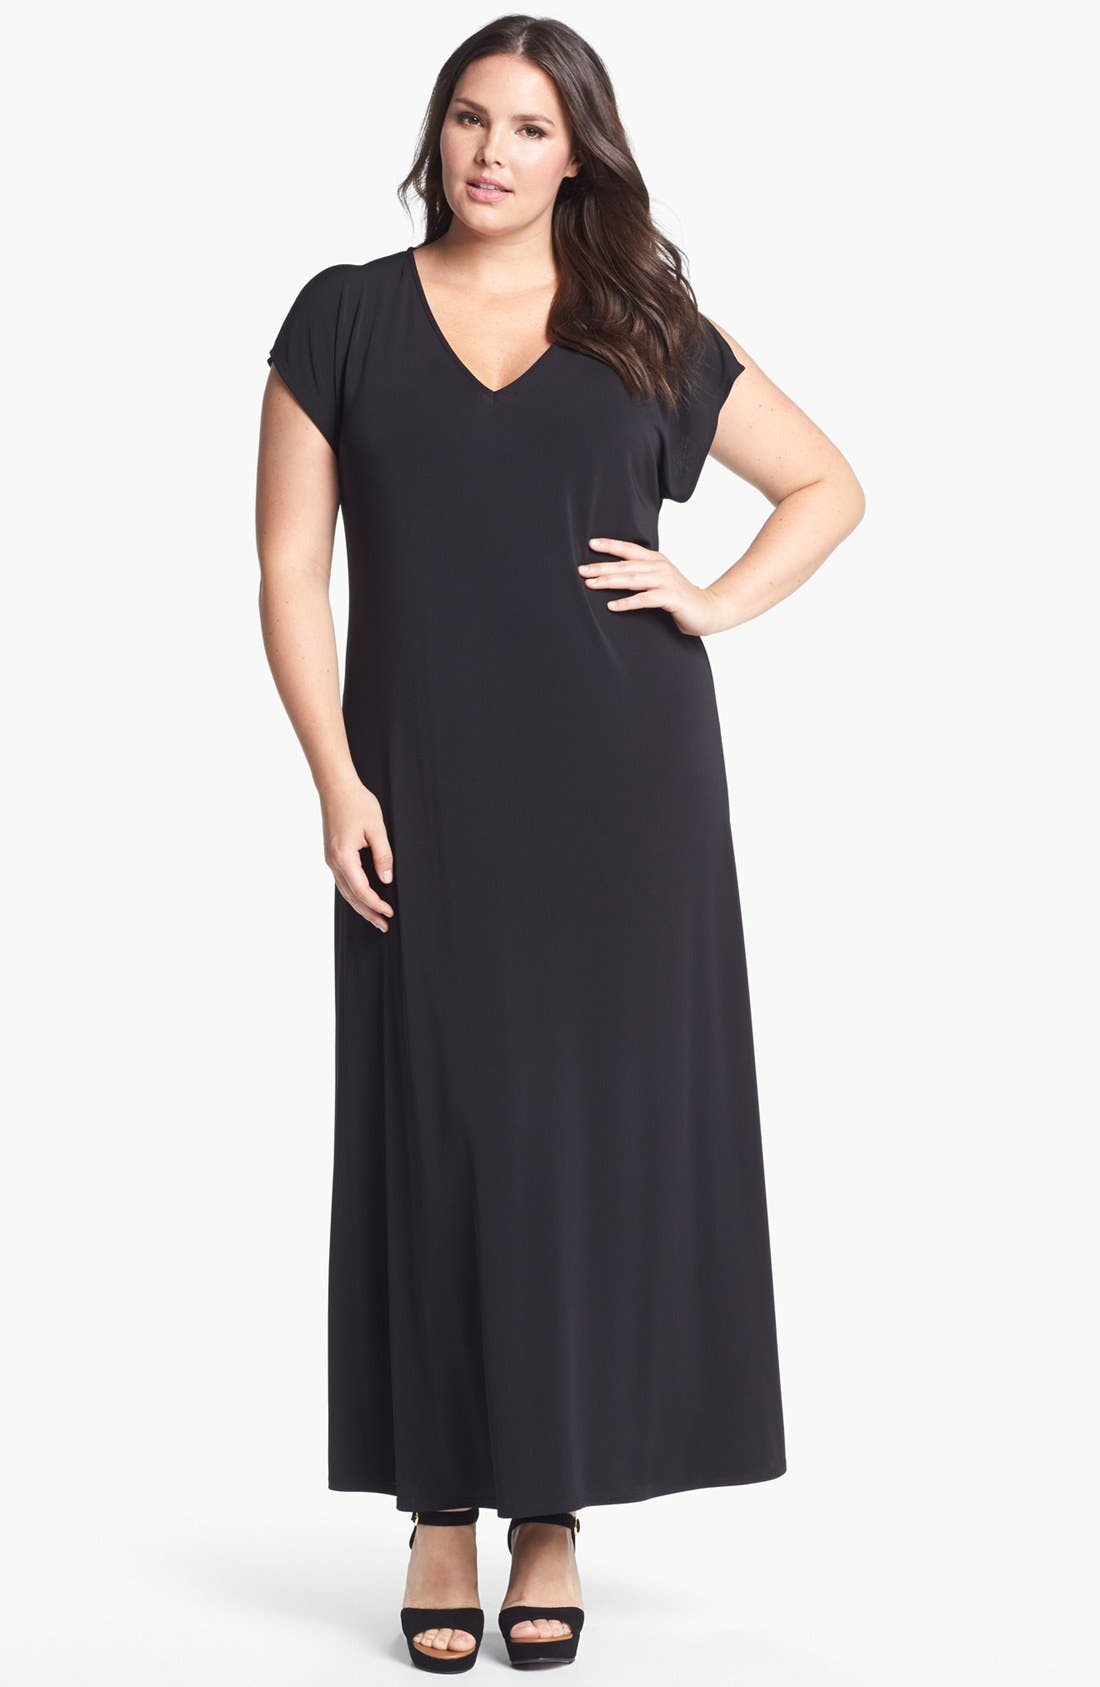 Alternate Image 1 Selected - Evans Cold Shoulder Maxi Dress (Plus Size)